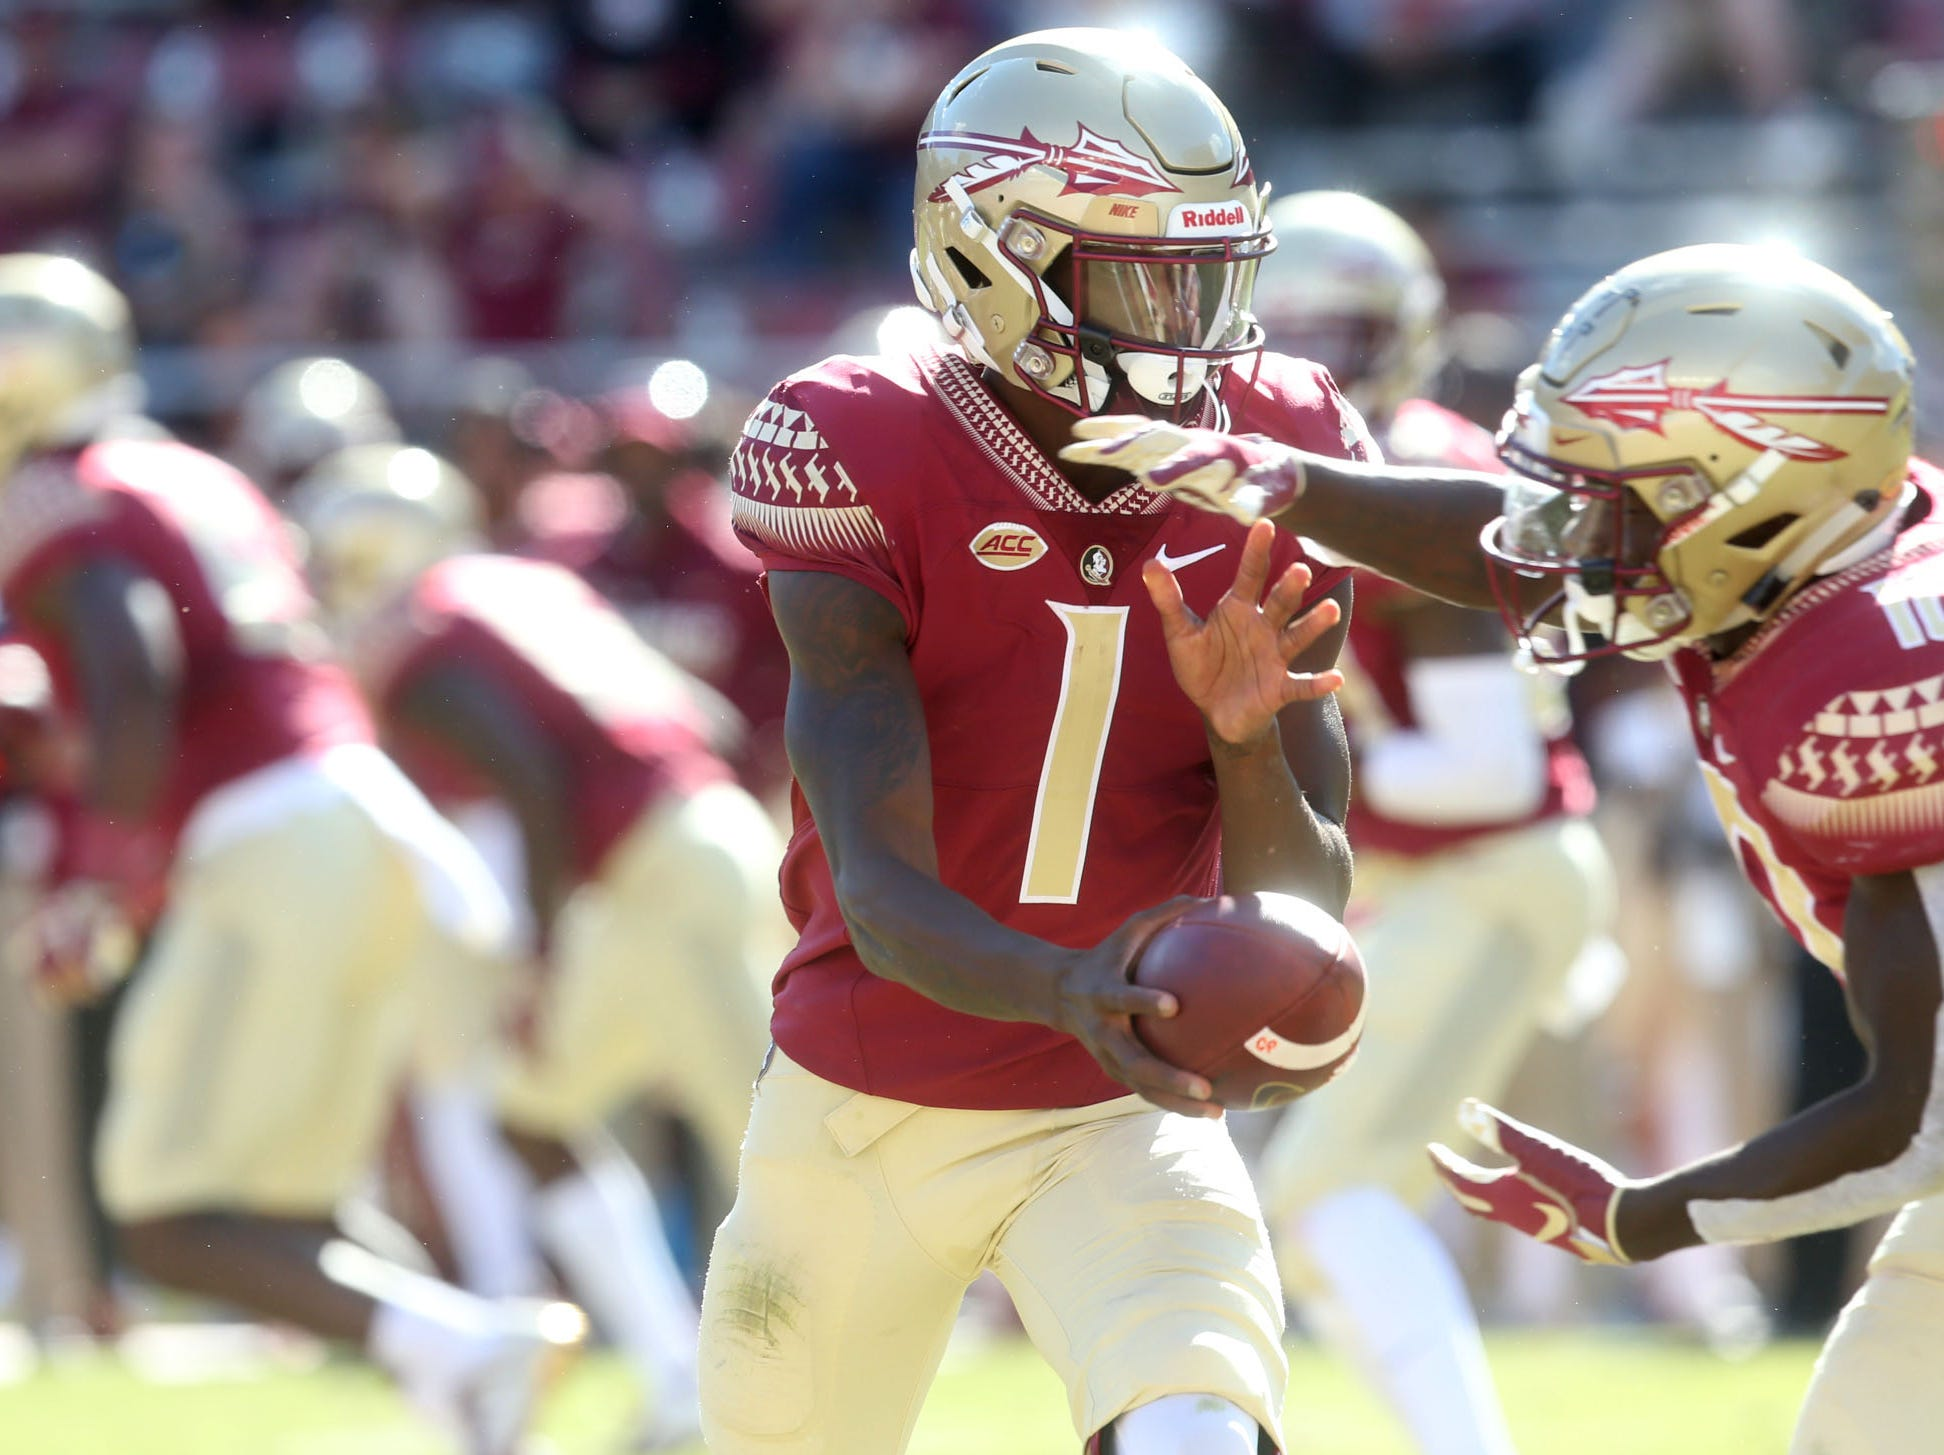 Florida State Seminoles quarterback James Blackman (1) makes a hand off as the Florida State Seminoles take on the Clemson Tigers in college football at Doak S. Campbell Stadium on Saturday, Oct. 27, 2018.